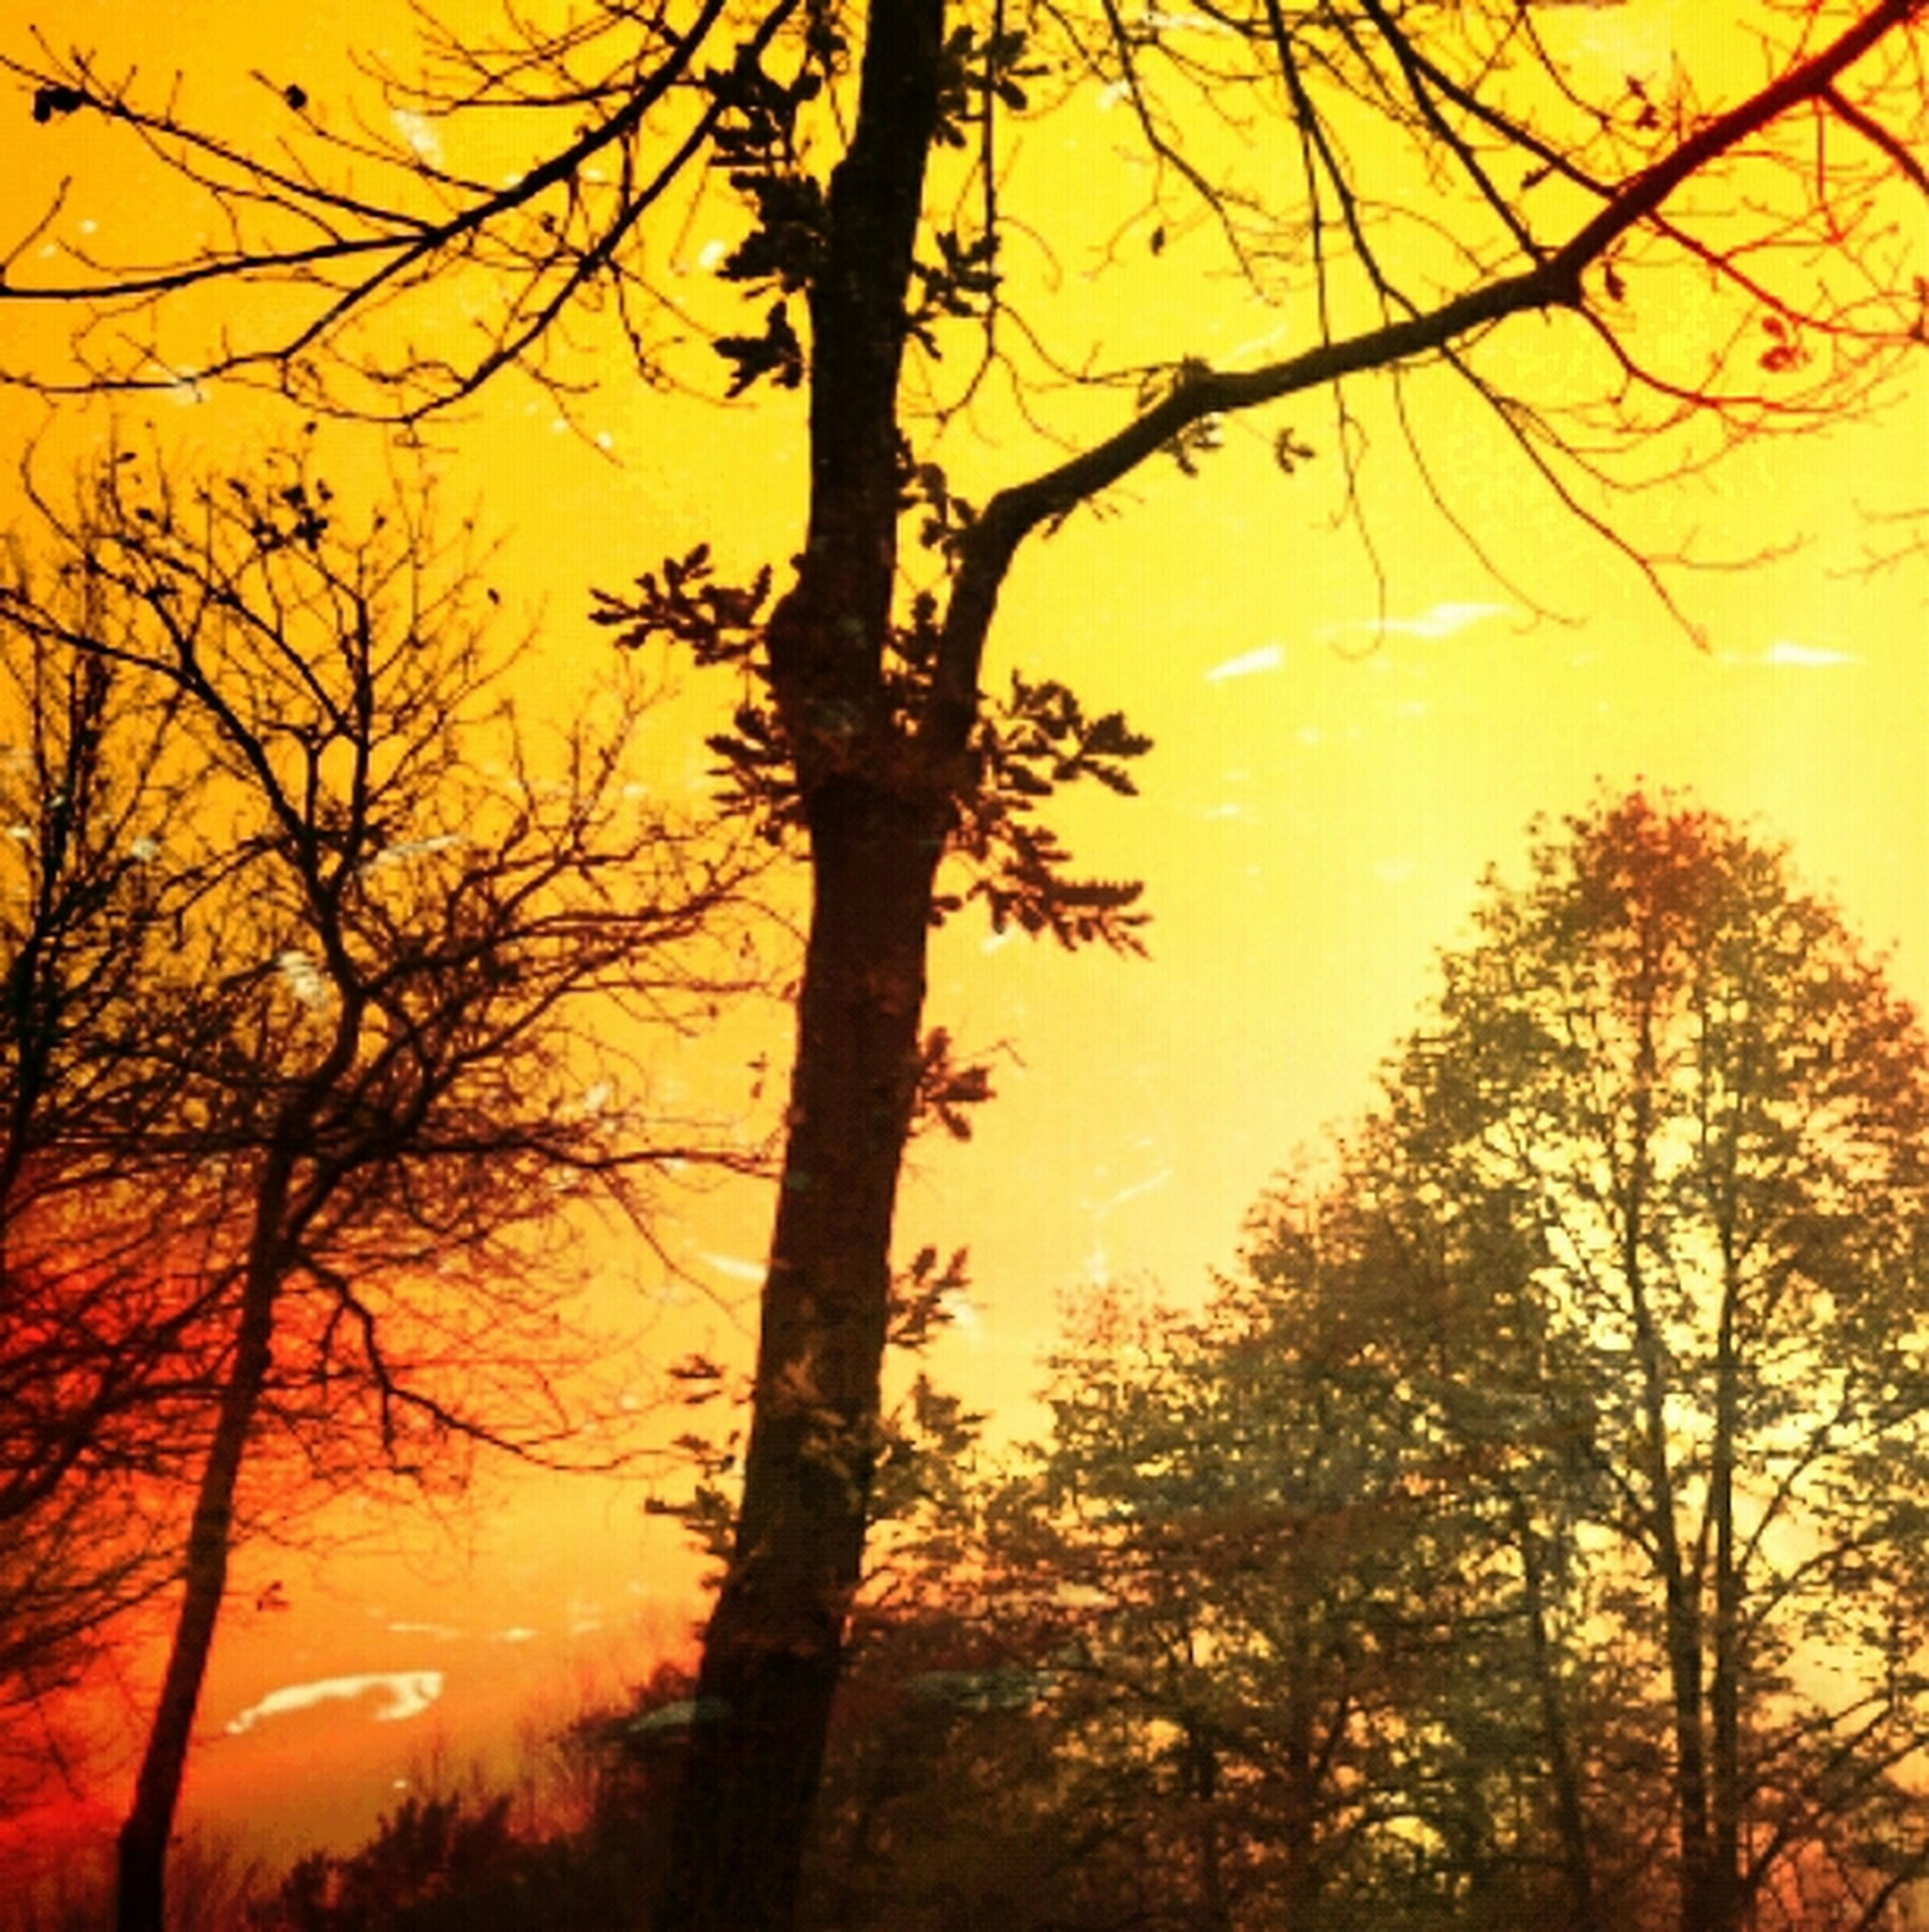 sunset, tree, orange color, branch, bare tree, silhouette, tranquility, scenics, tranquil scene, beauty in nature, nature, sky, sun, idyllic, tree trunk, growth, low angle view, outdoors, yellow, no people